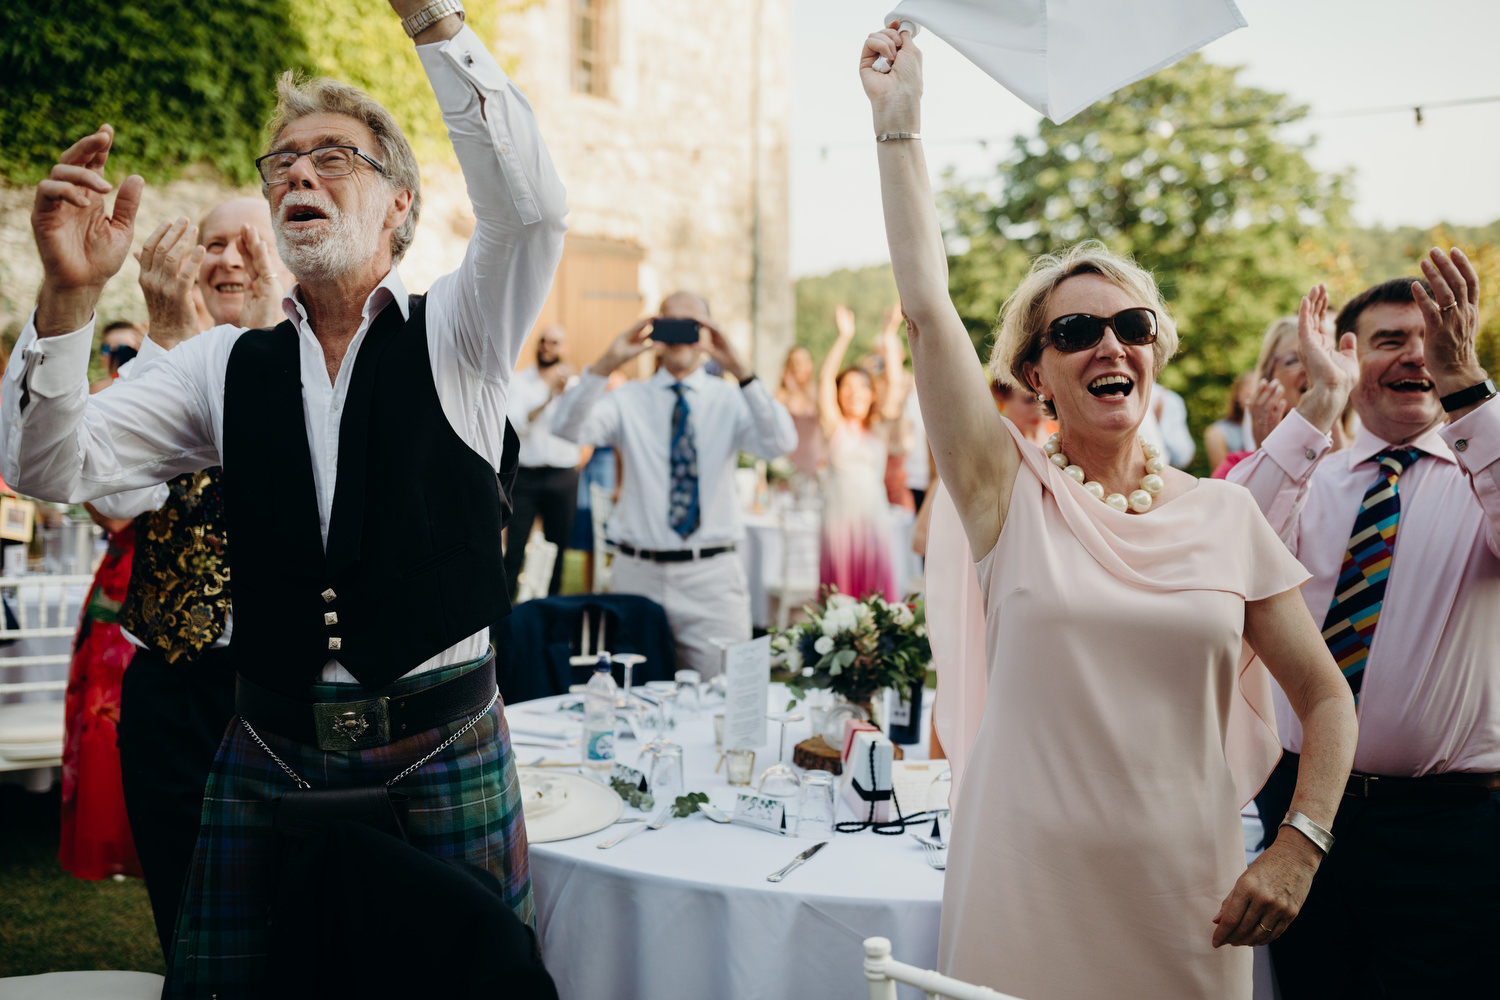 Guests waving their napkins in the air